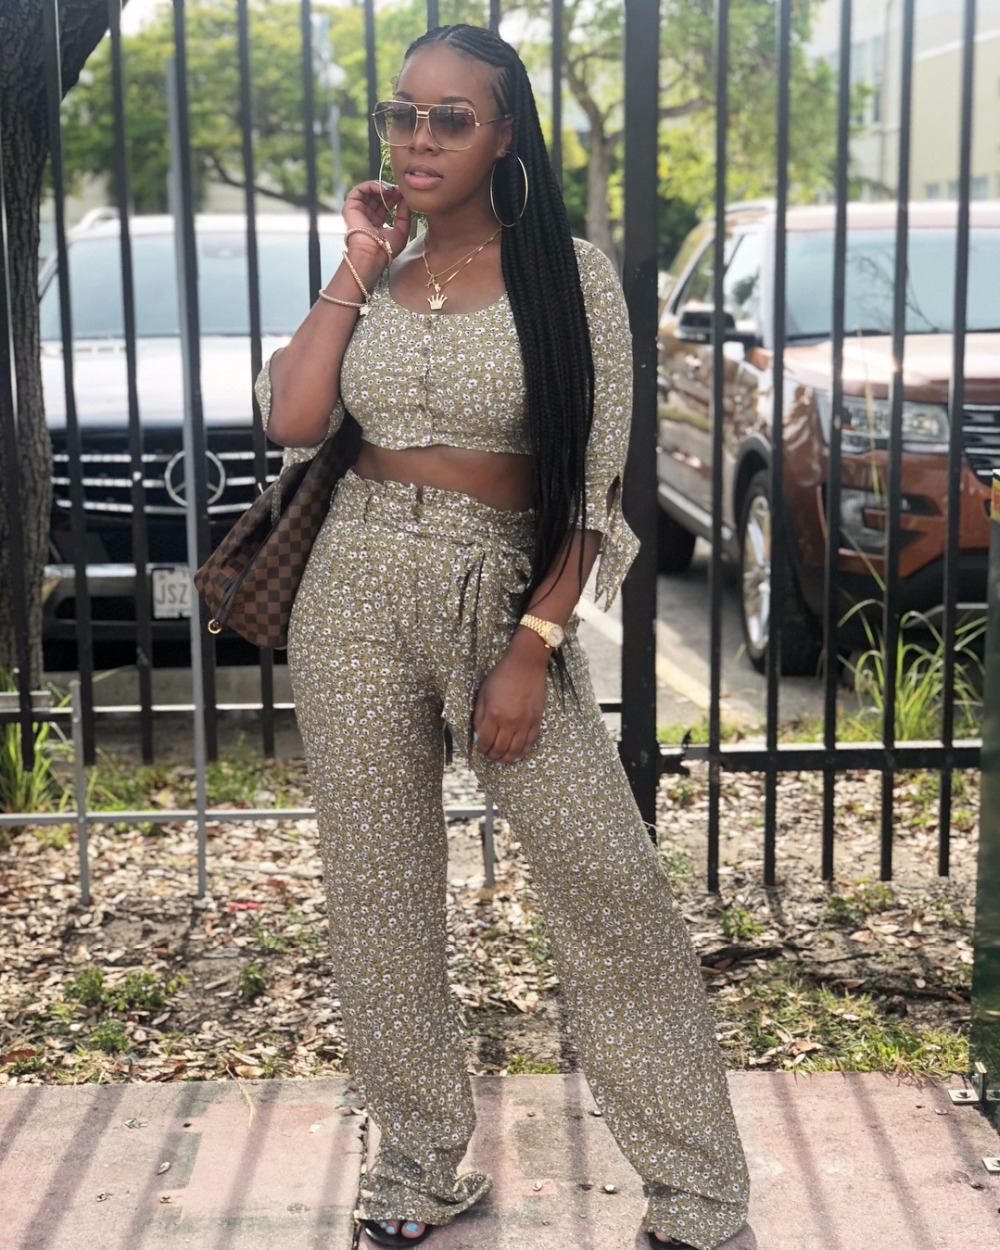 Competent Floral Printed 2 Piece Outfits Streetwear Lady Off The Shoulder Half Sleeve Crop Top And High Waist Long Pants With Sashes D8188 Suits & Sets